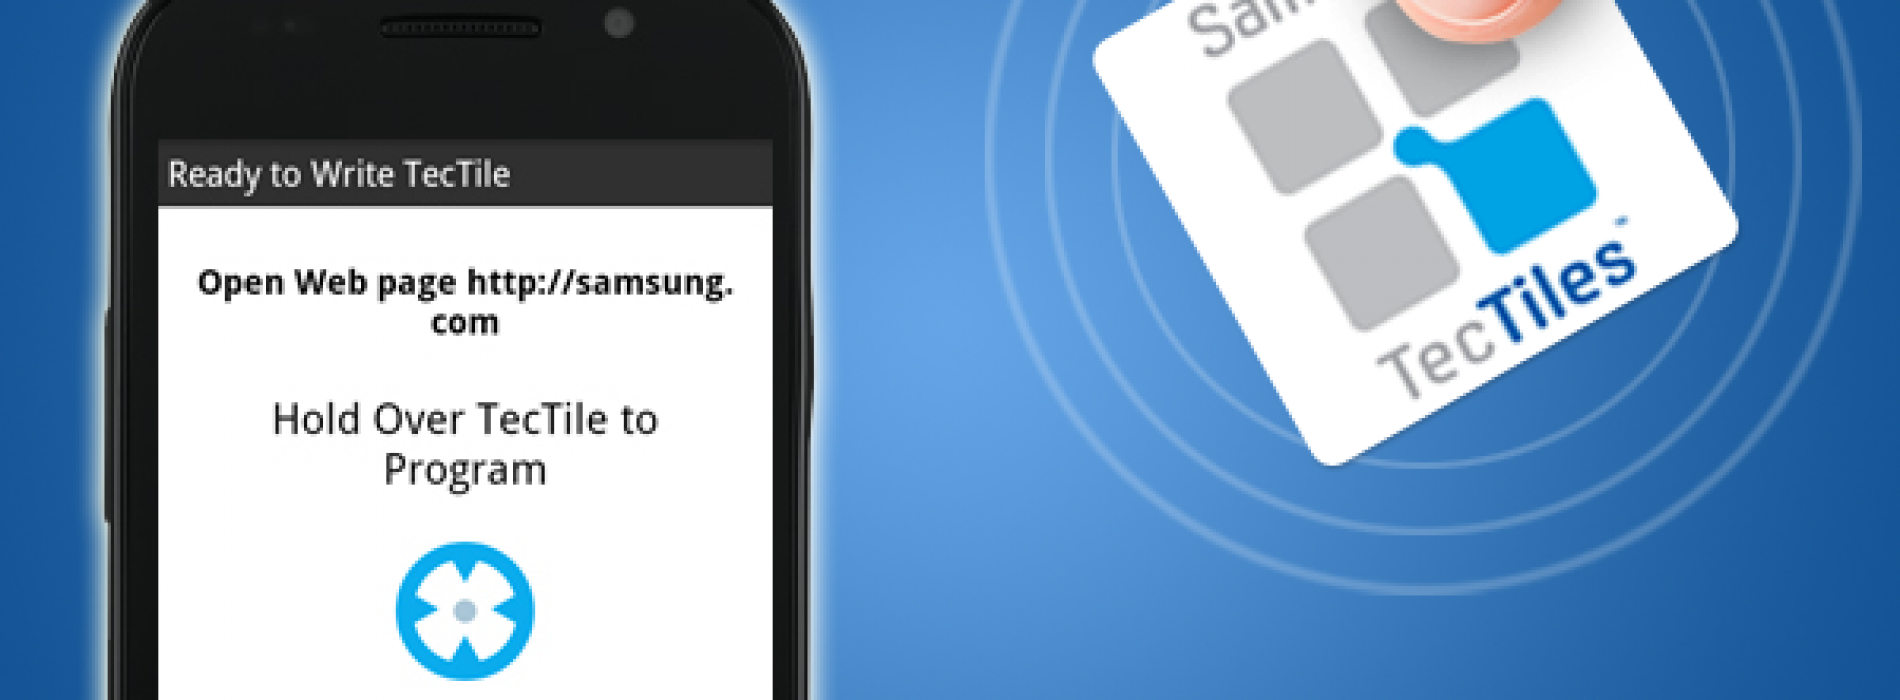 Samsung TecTiles could usher in real demand for NFC